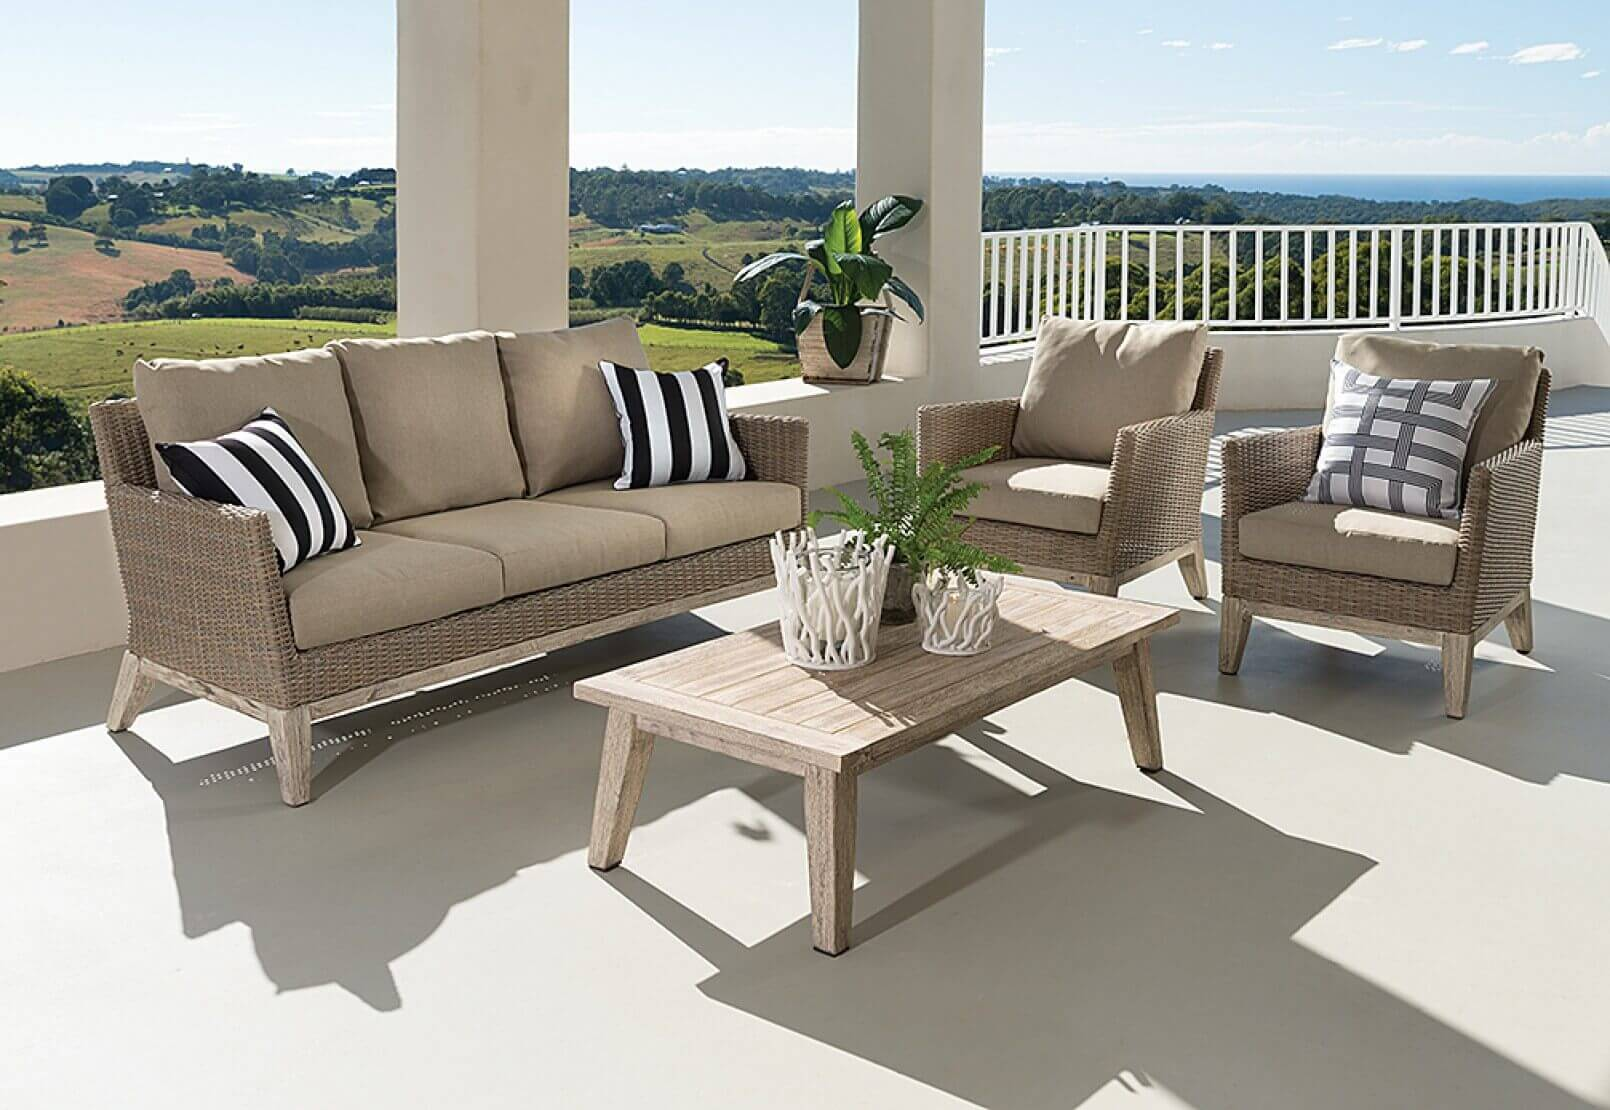 Comfortable Outdoor Chairs 4 Tricks To Maximize Your Outdoor Space Live Enhanced